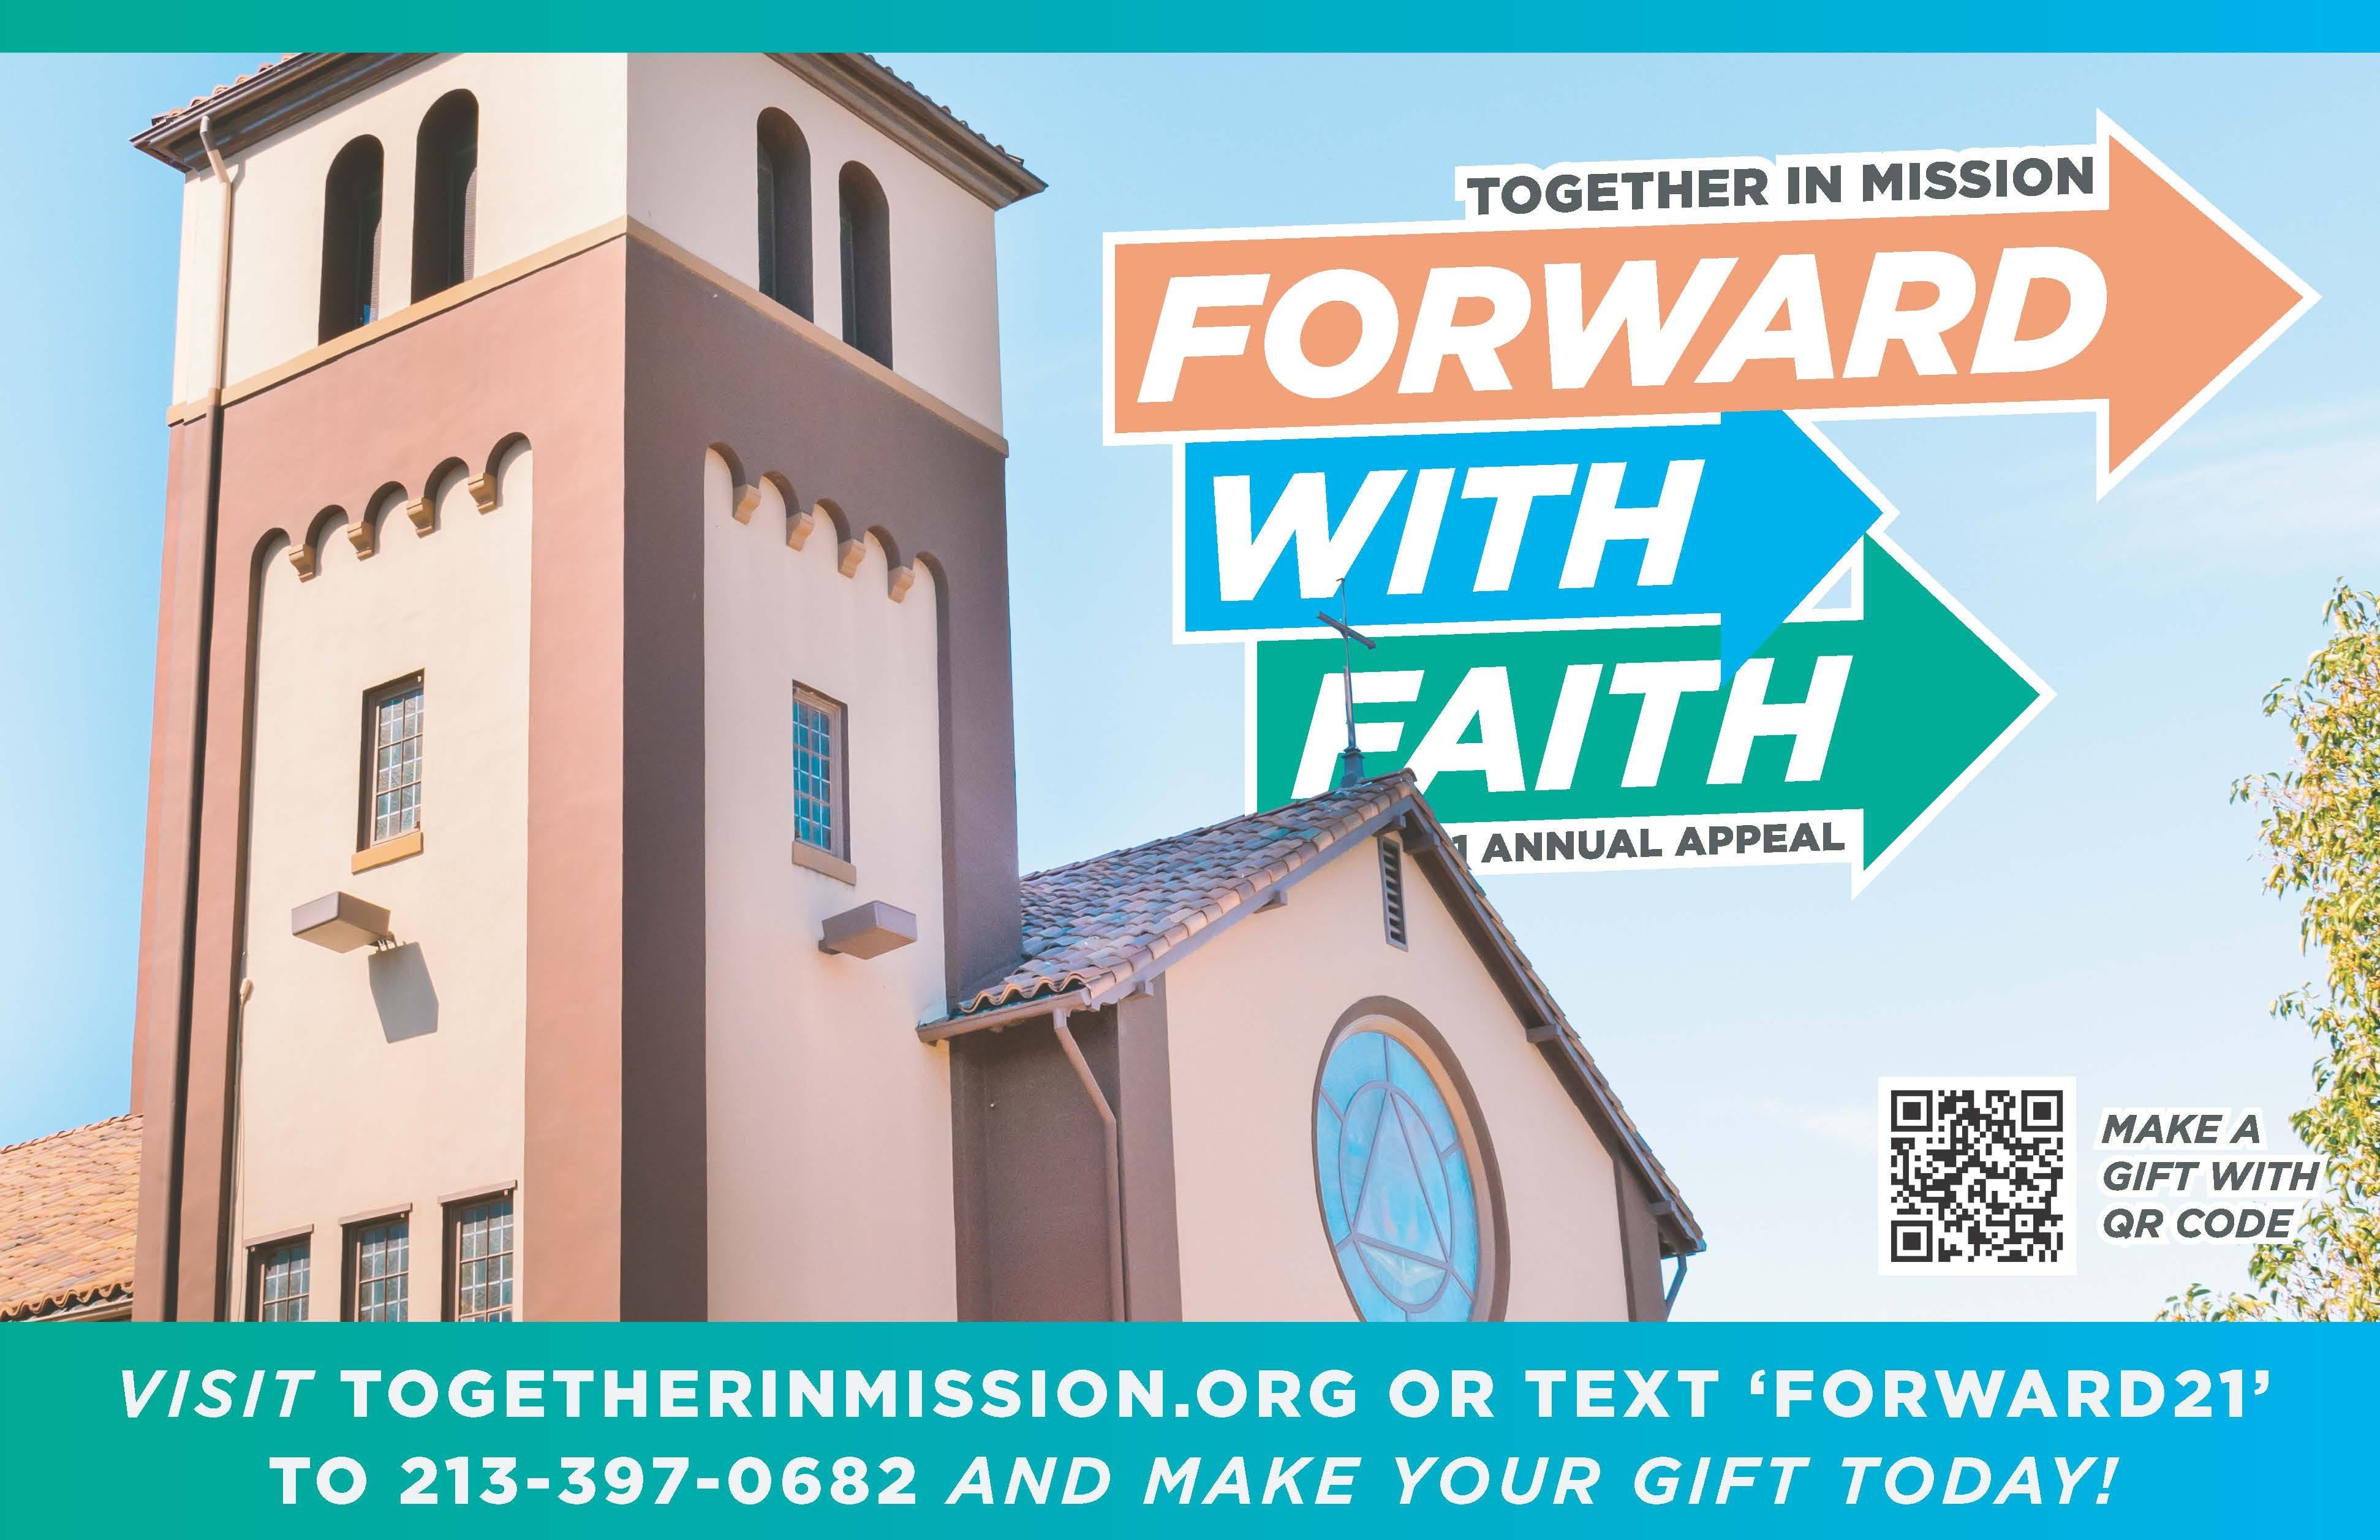 Give Now to Together in Mission!